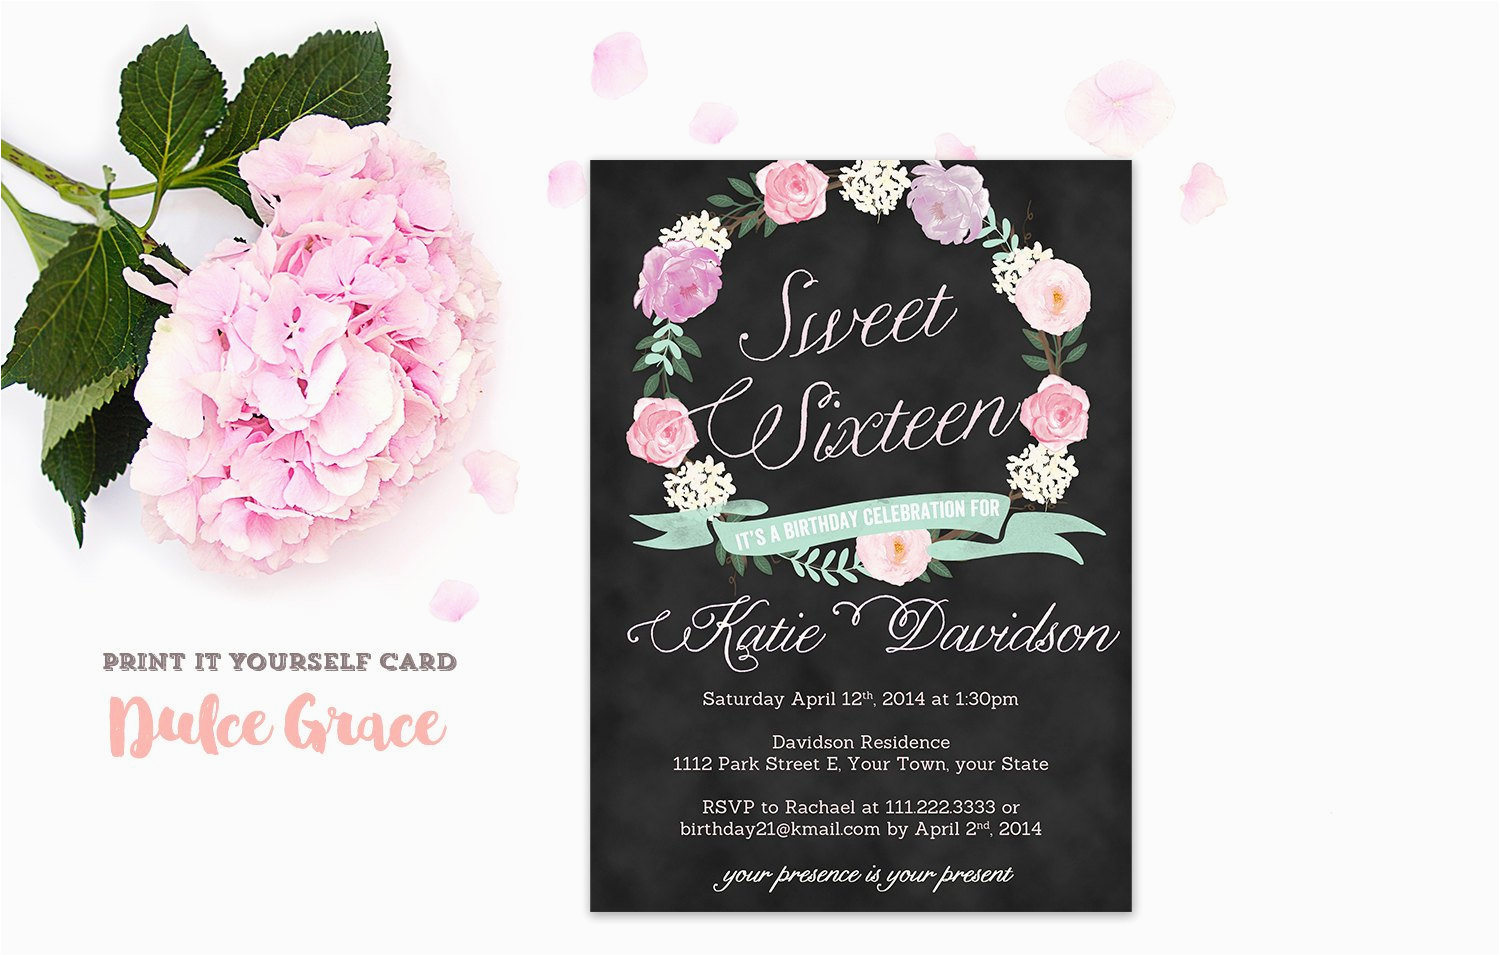 Invitations For Sweet Sixteen Birthday Party 16 Invitation Printable